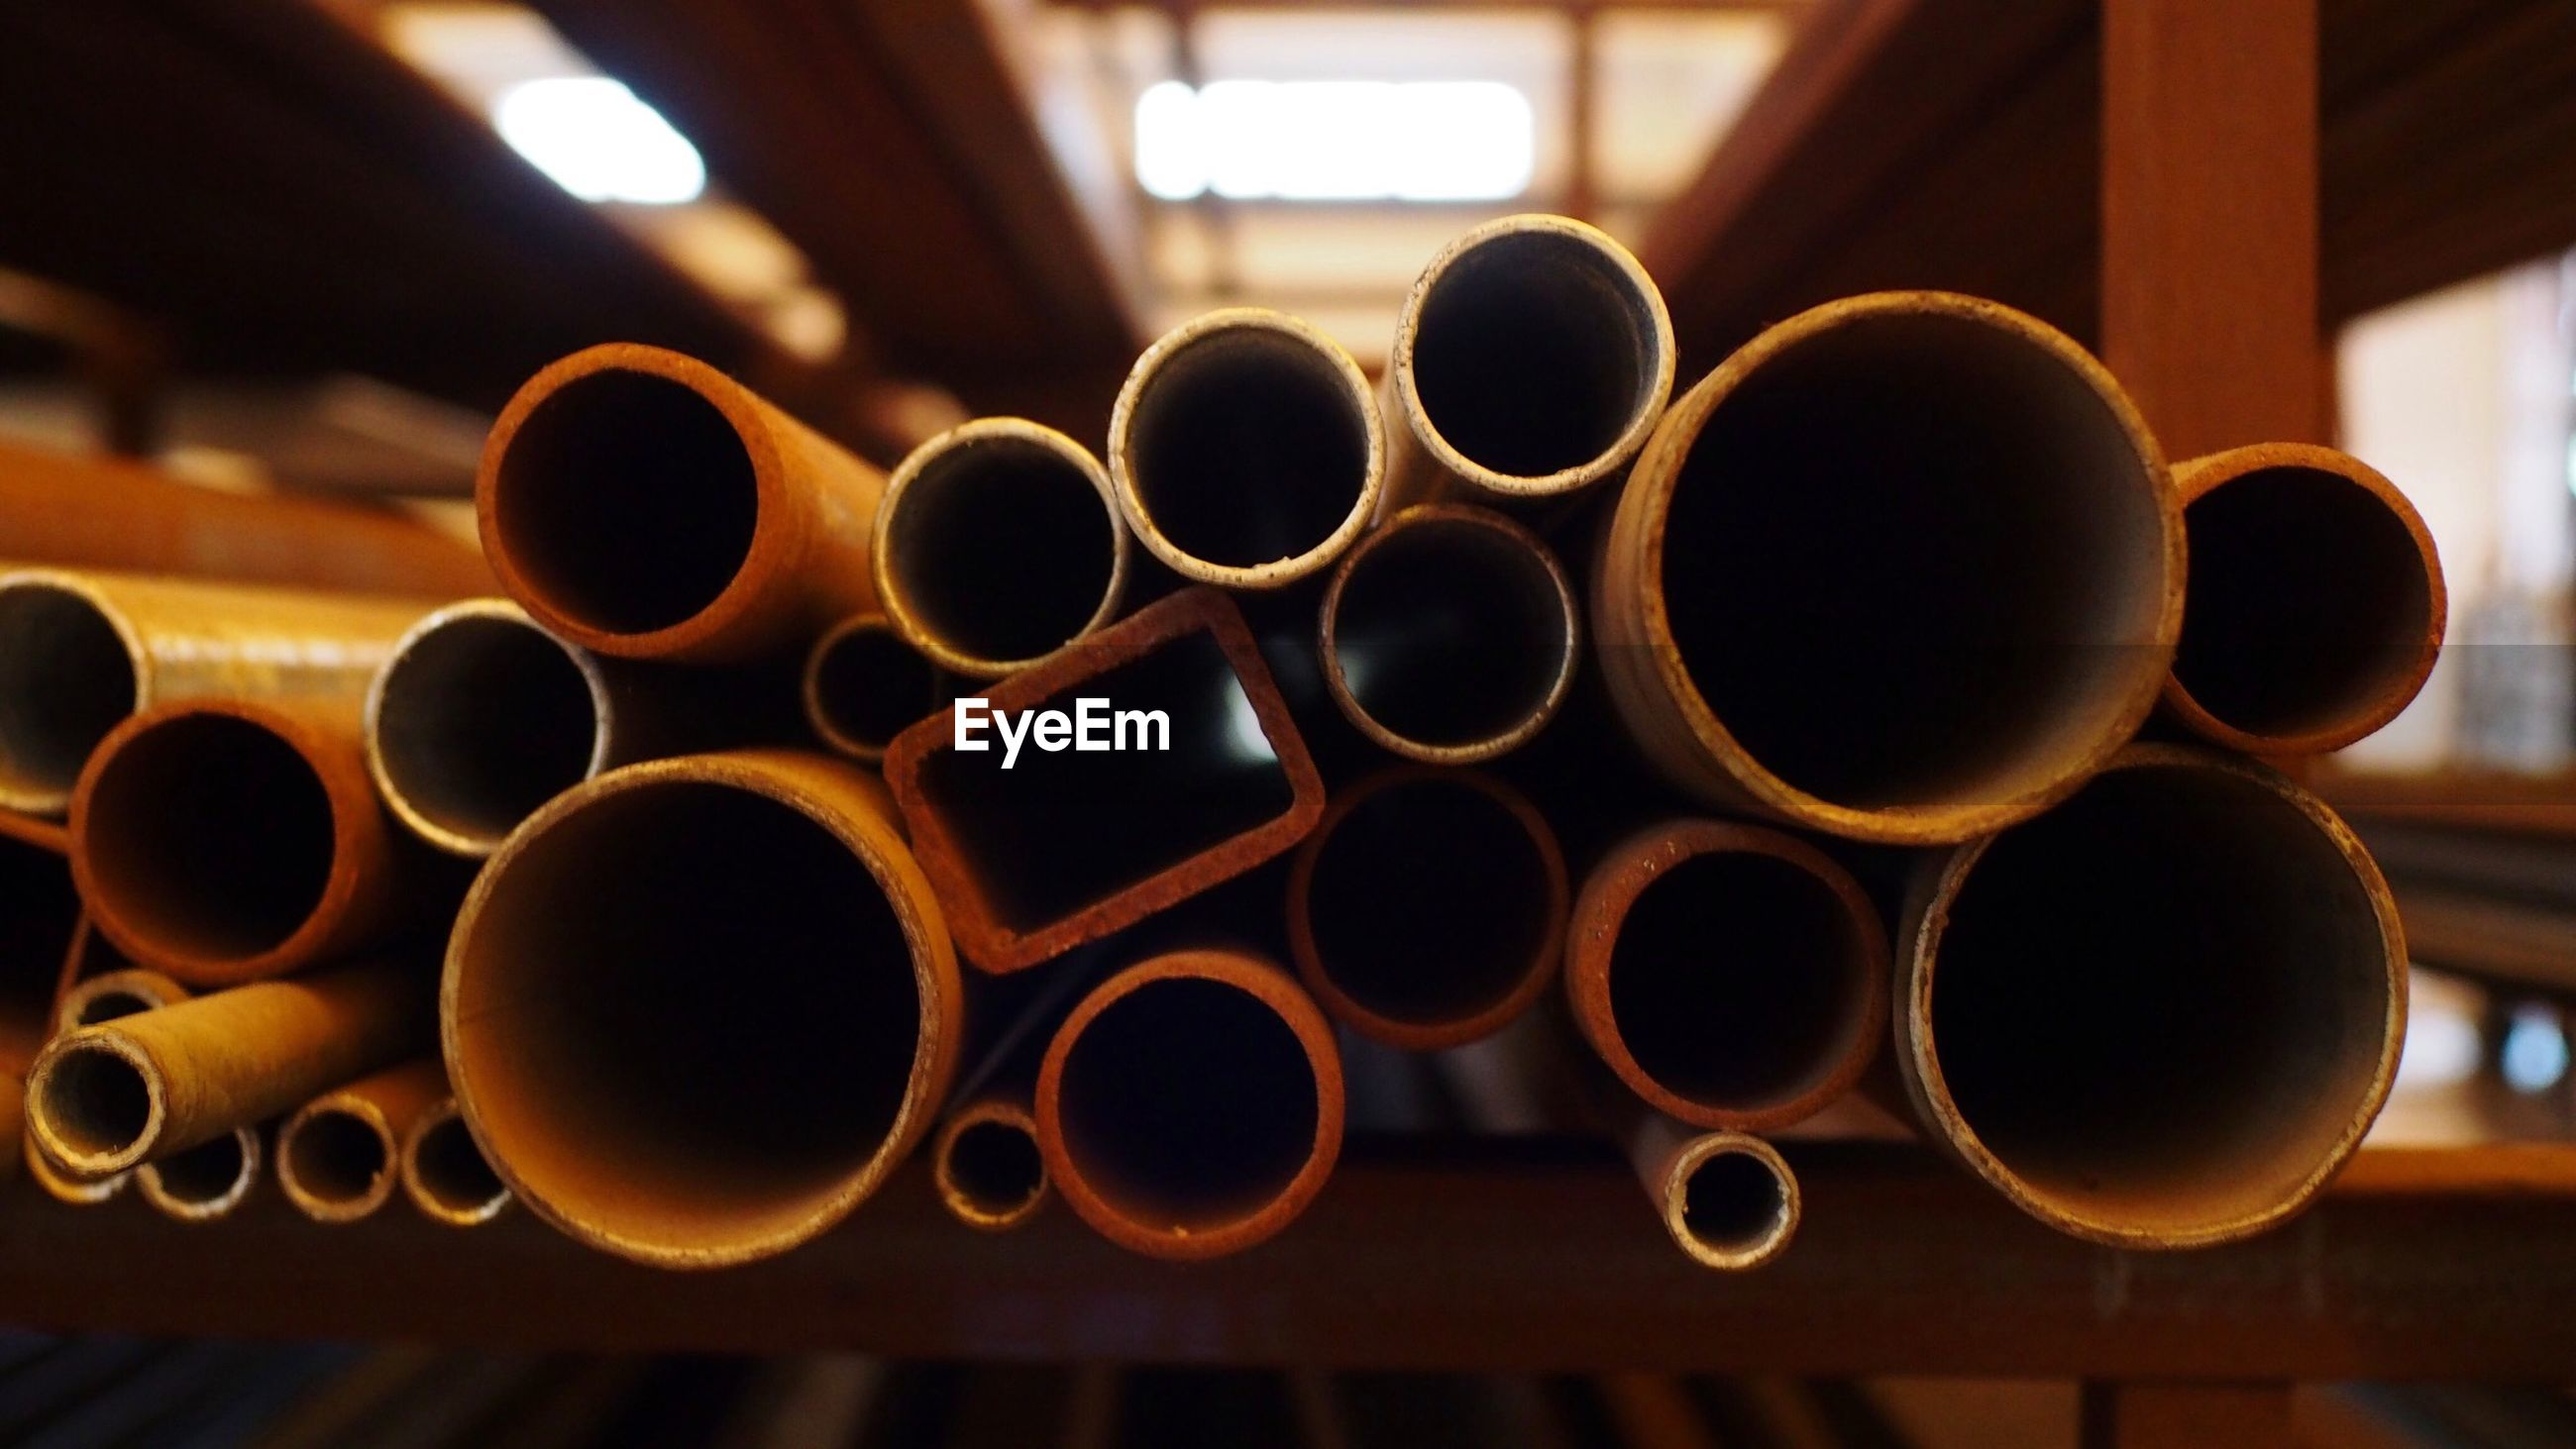 Close-up of metallic pipes at factory